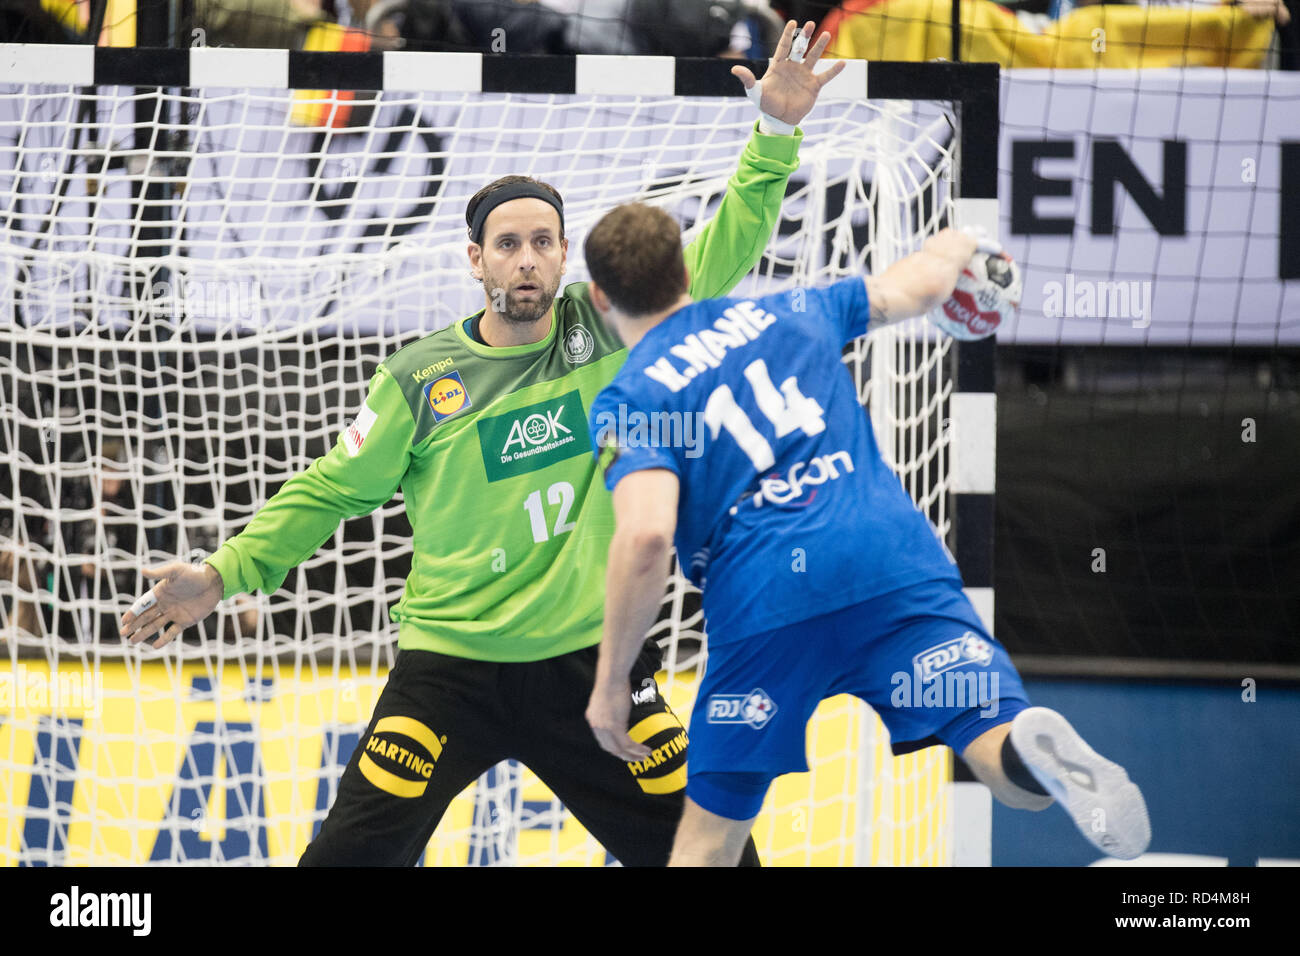 Berlin, Deutschland. 15th Jan, 2019. Goalkeeper Silvio HEINEVETTER (GER) in the seven-meter duel versus Kentin MAHE (FRA), action, preliminary round group A, Germany (GER) - France (FRA) 25:25, on 15.01.2019 in Berlin/Germany. Handball World Cup 2019, from 10.01. - 27.01.2019 in Germany and Denmark. | Usage worldwide Credit: dpa/Alamy Live News Stock Photo